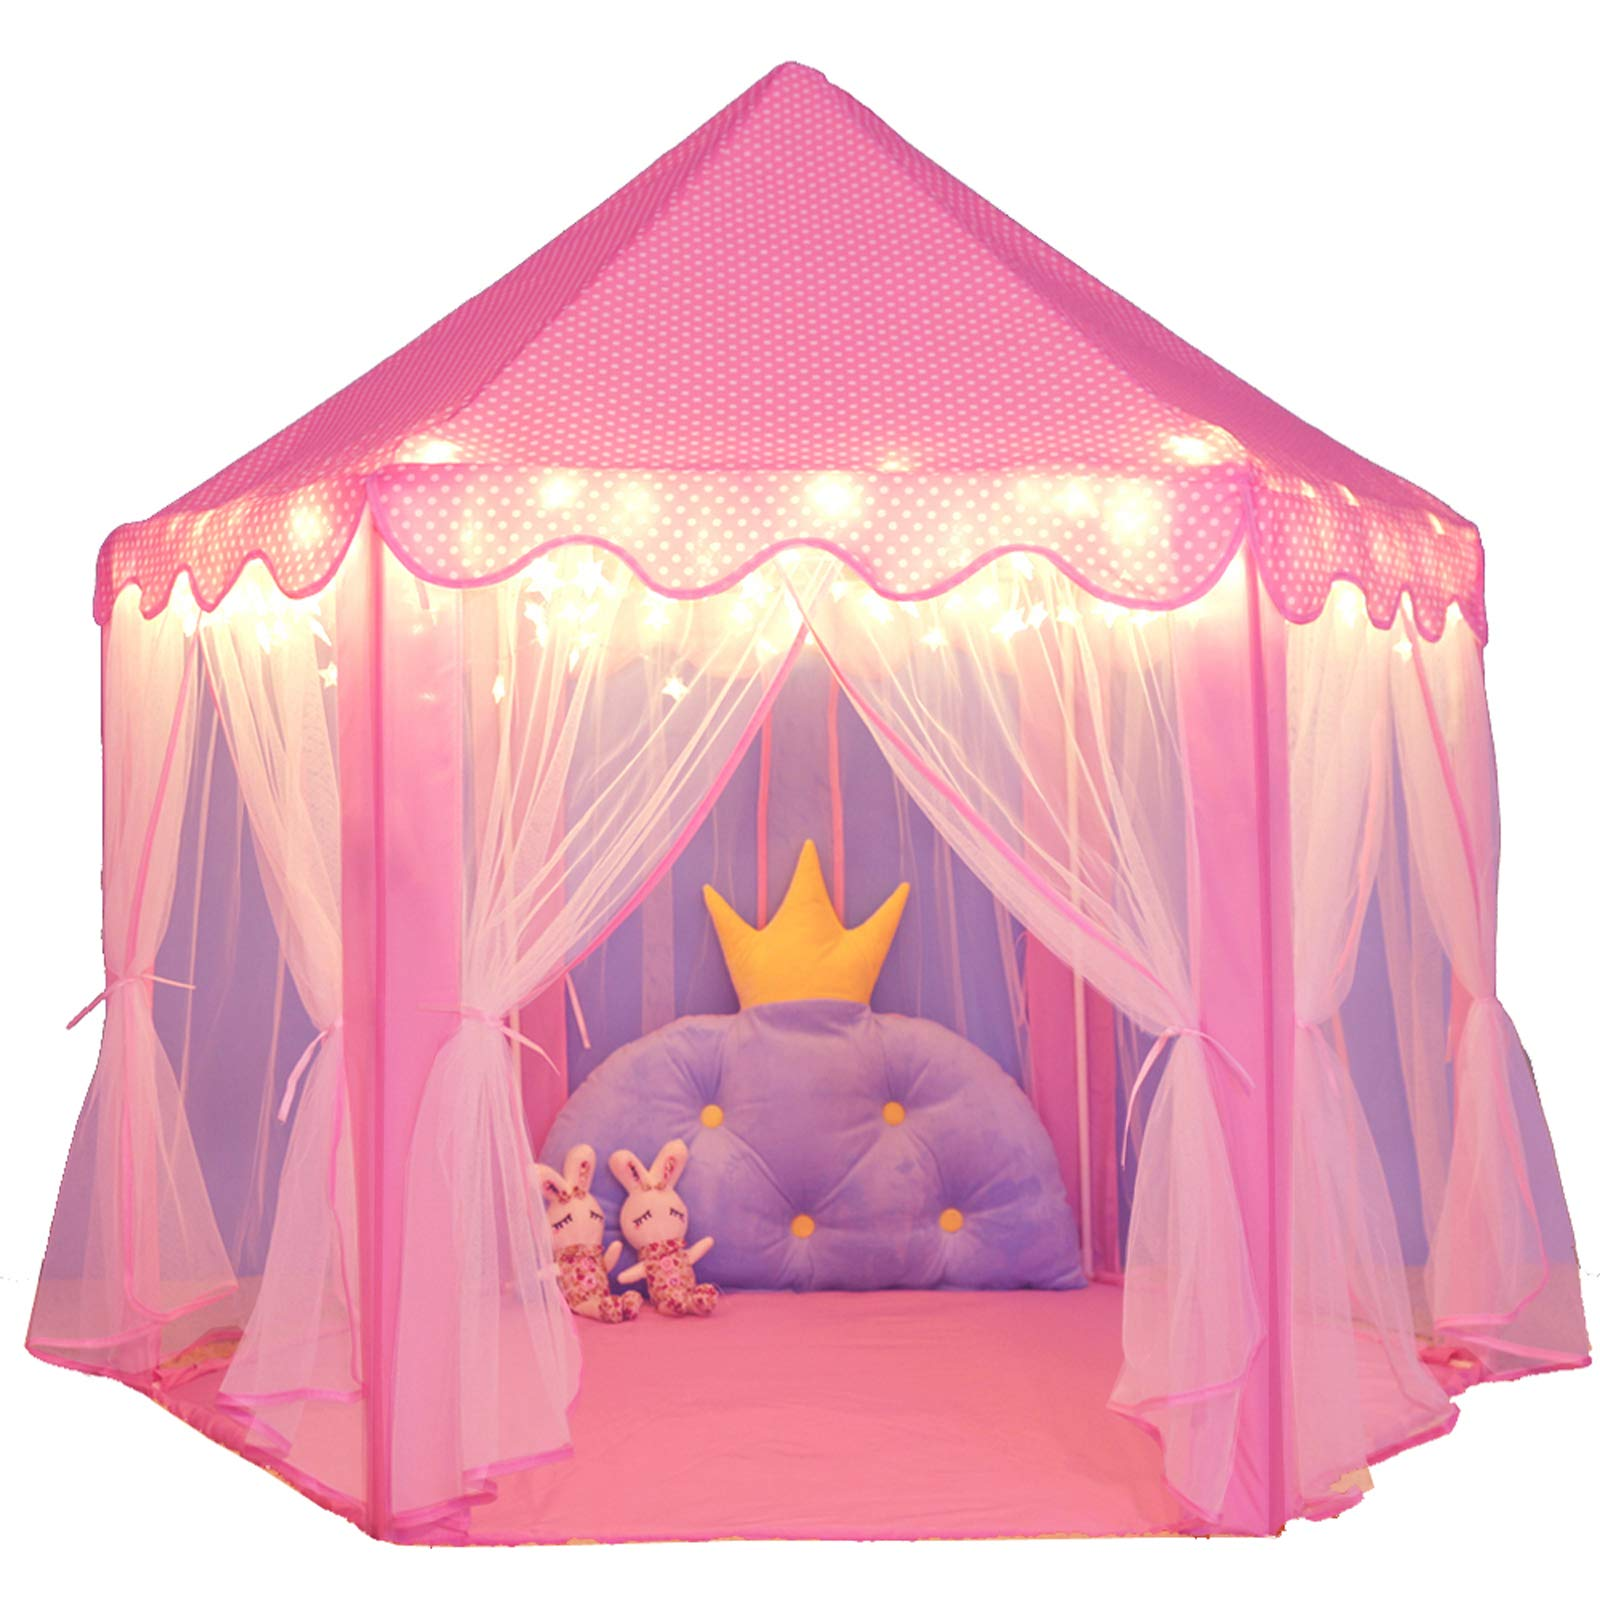 Amazon Com Wilwolfer Princess Castle Play Tent Large Kids Play House With Star Lights Girls Pink Play Tents Toy For Indoor Outdoor Games Toys Games